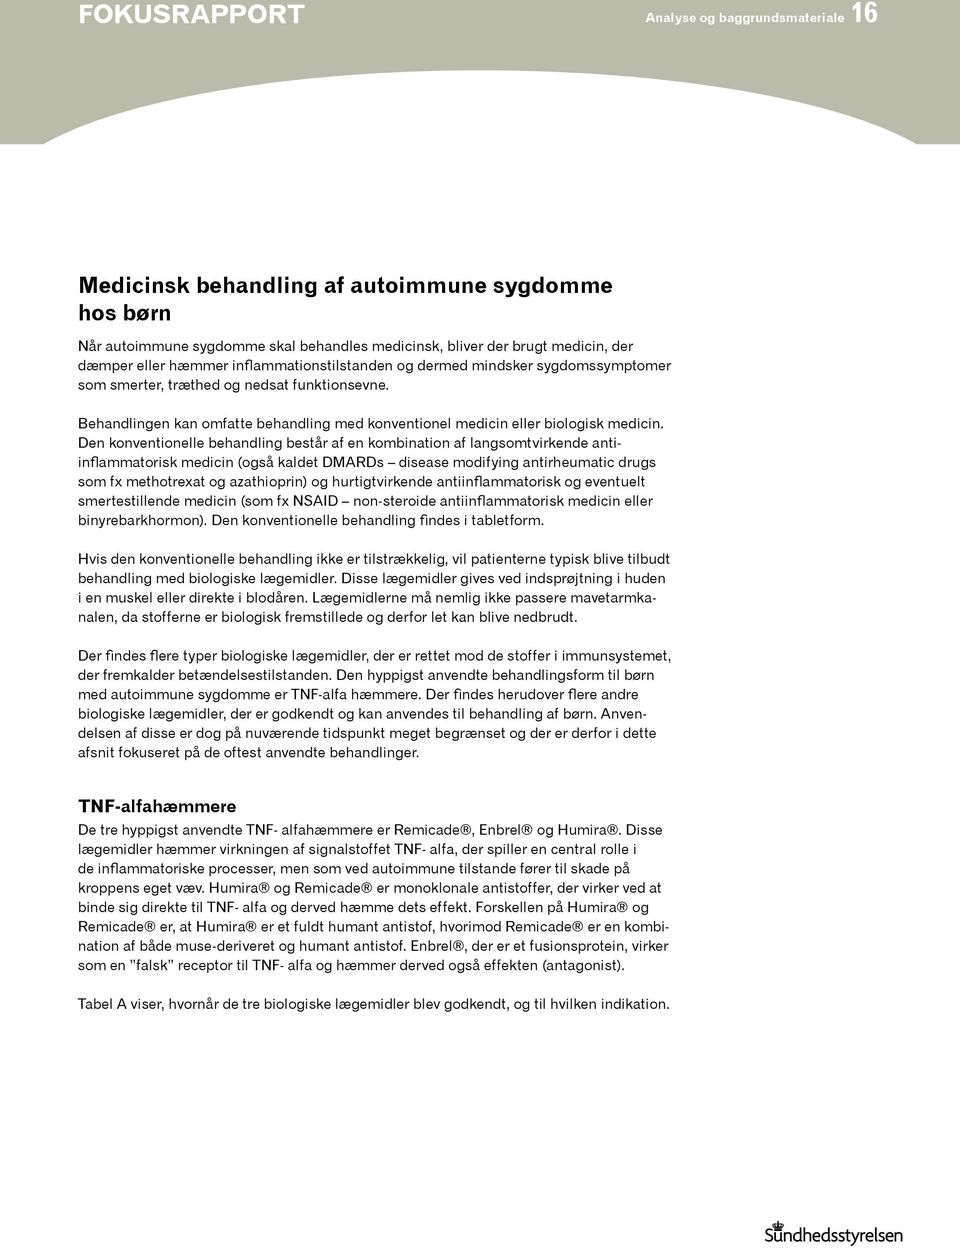 Den konventionelle behandling består af en kombination af langsomtvirkende antiinflammatorisk medicin (også kaldet DMARDs disease modifying antirheumatic drugs som fx methotrexat og azathioprin) og